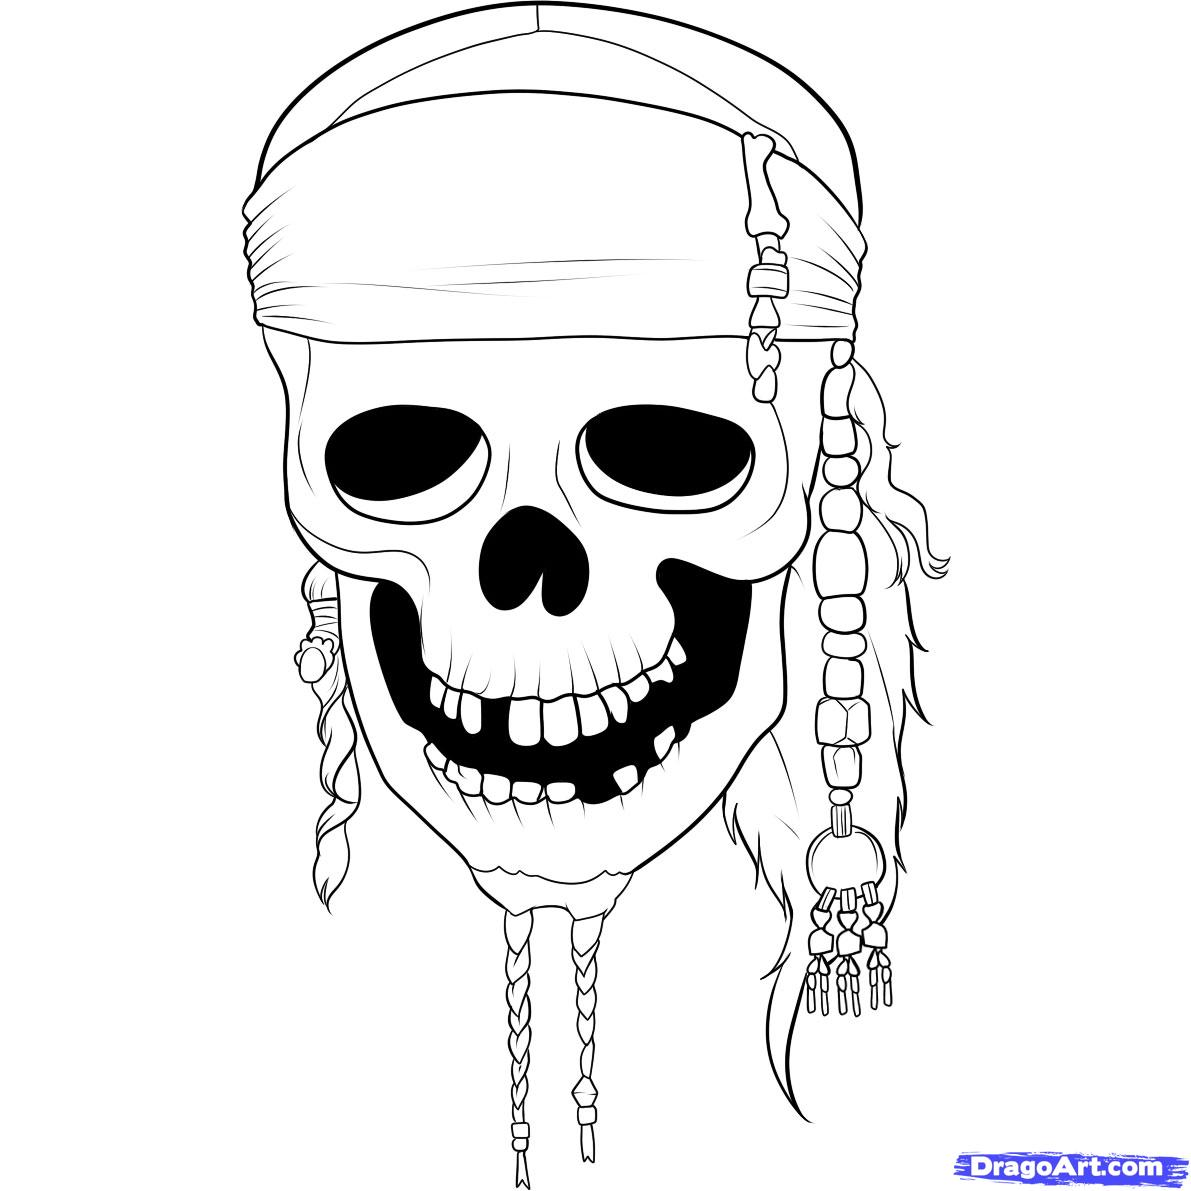 Drawn pirate easy Of Draw skull How the